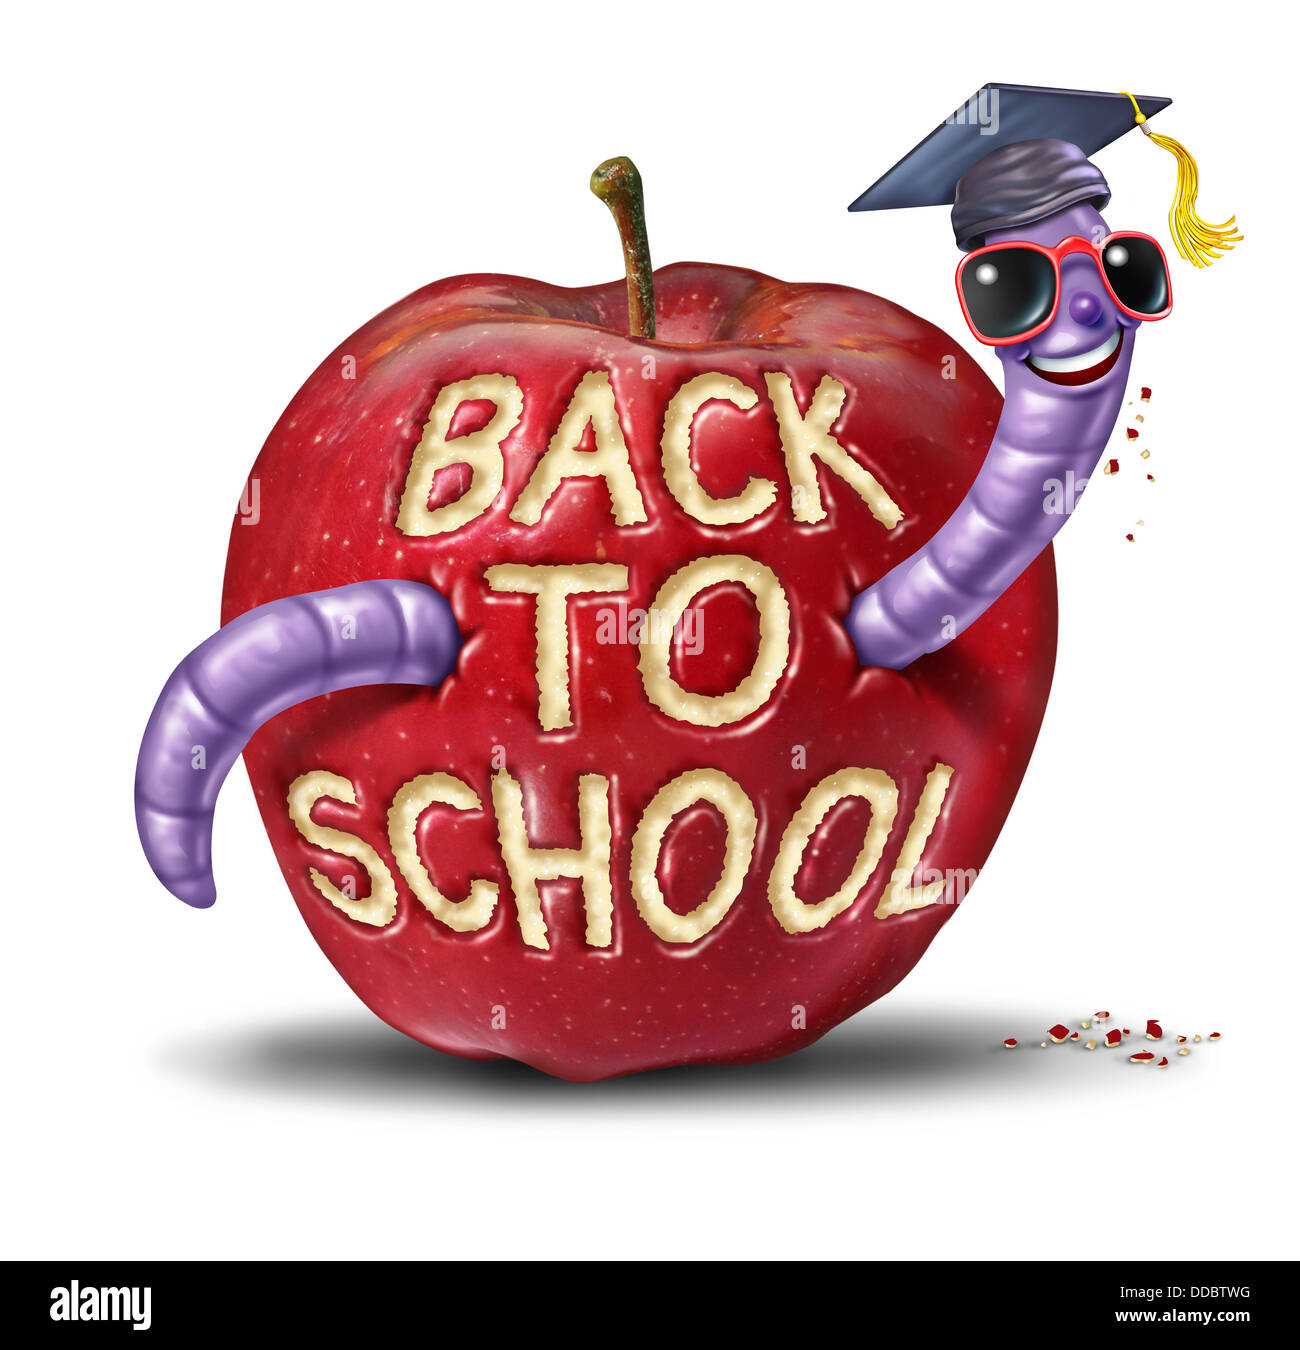 Back to school apple with a fun worm character wearing a graduation cap who has eaten the words from the fruit as - Stock Image